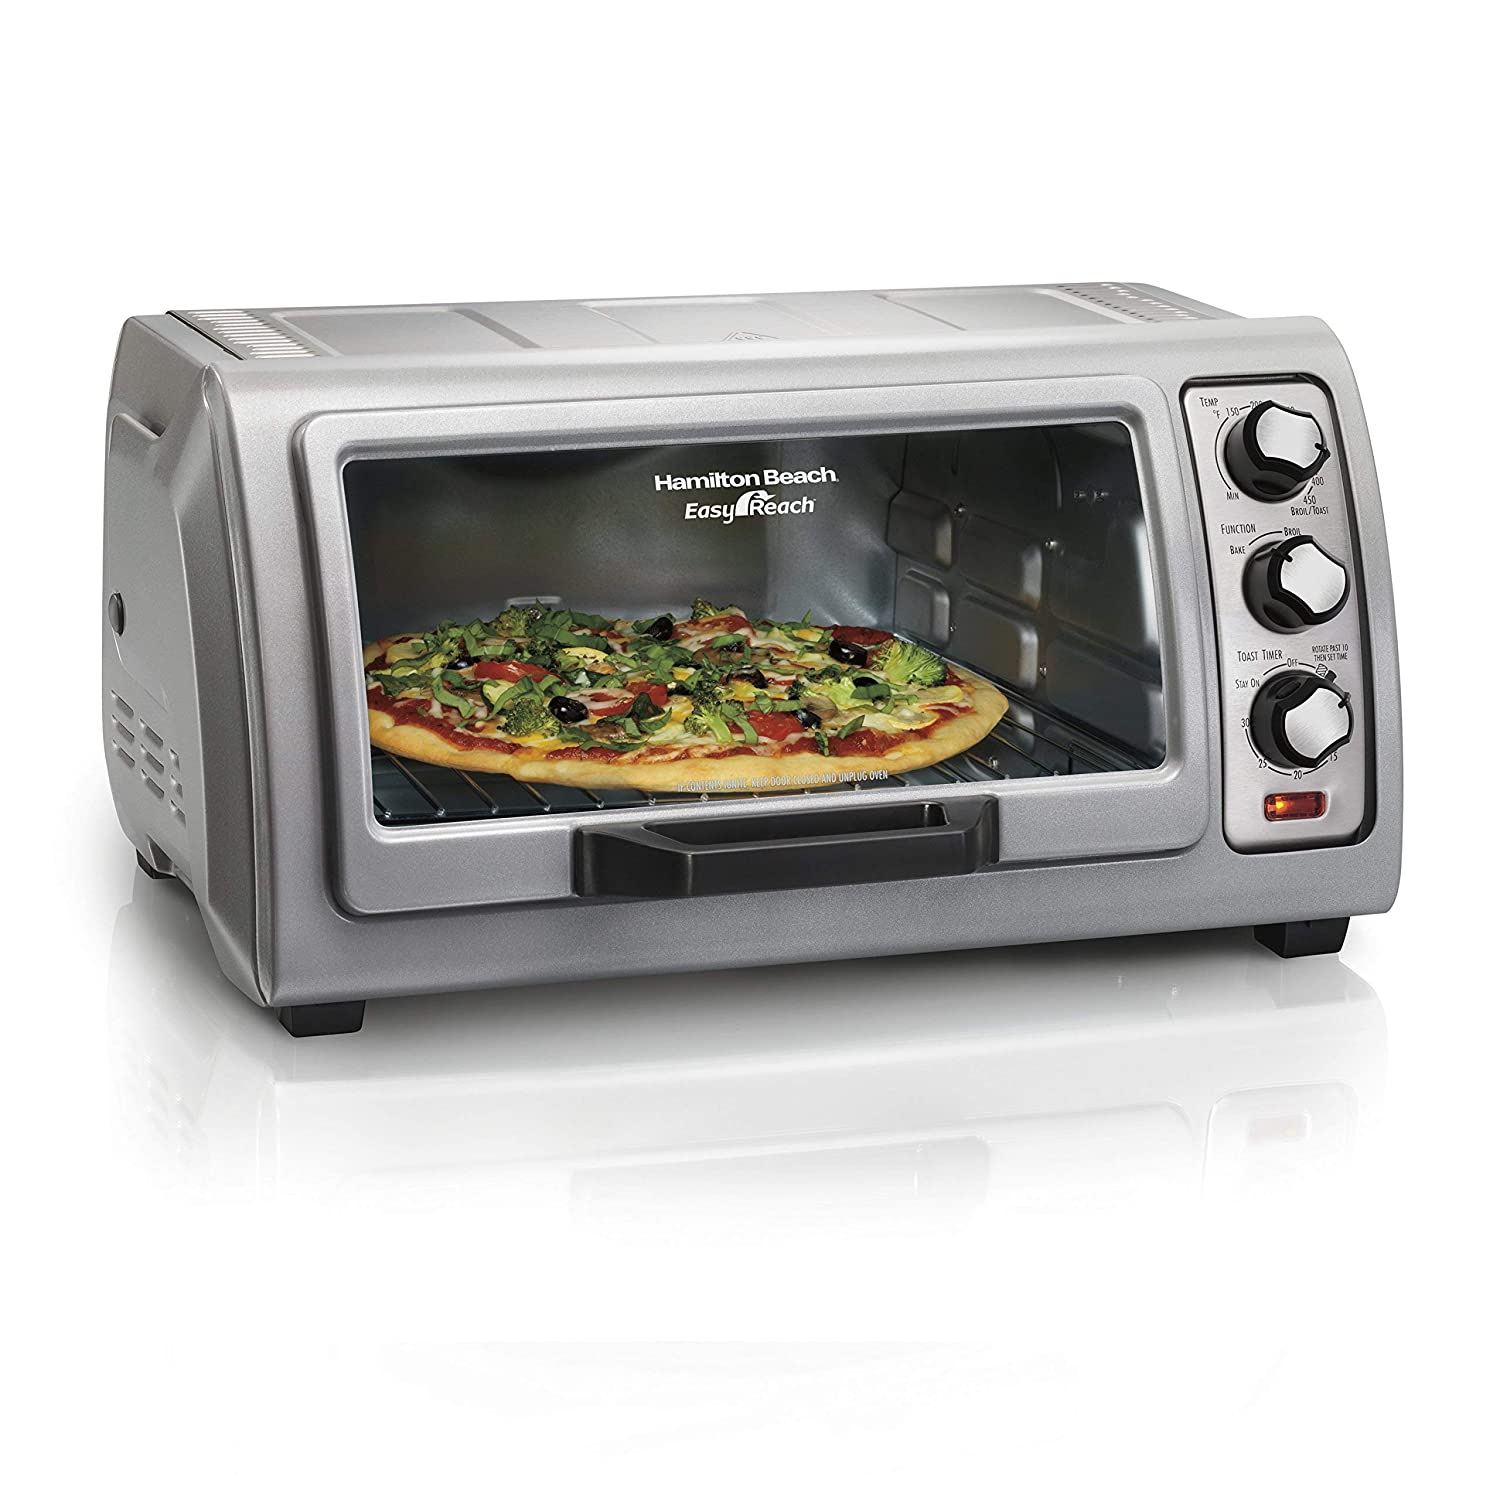 Hamilton Beach Countertop Toaster Oven Easy Reach with Roll-Top Door, 6-Slice & Auto Shutoff, Silver (31127D) (Renewed)